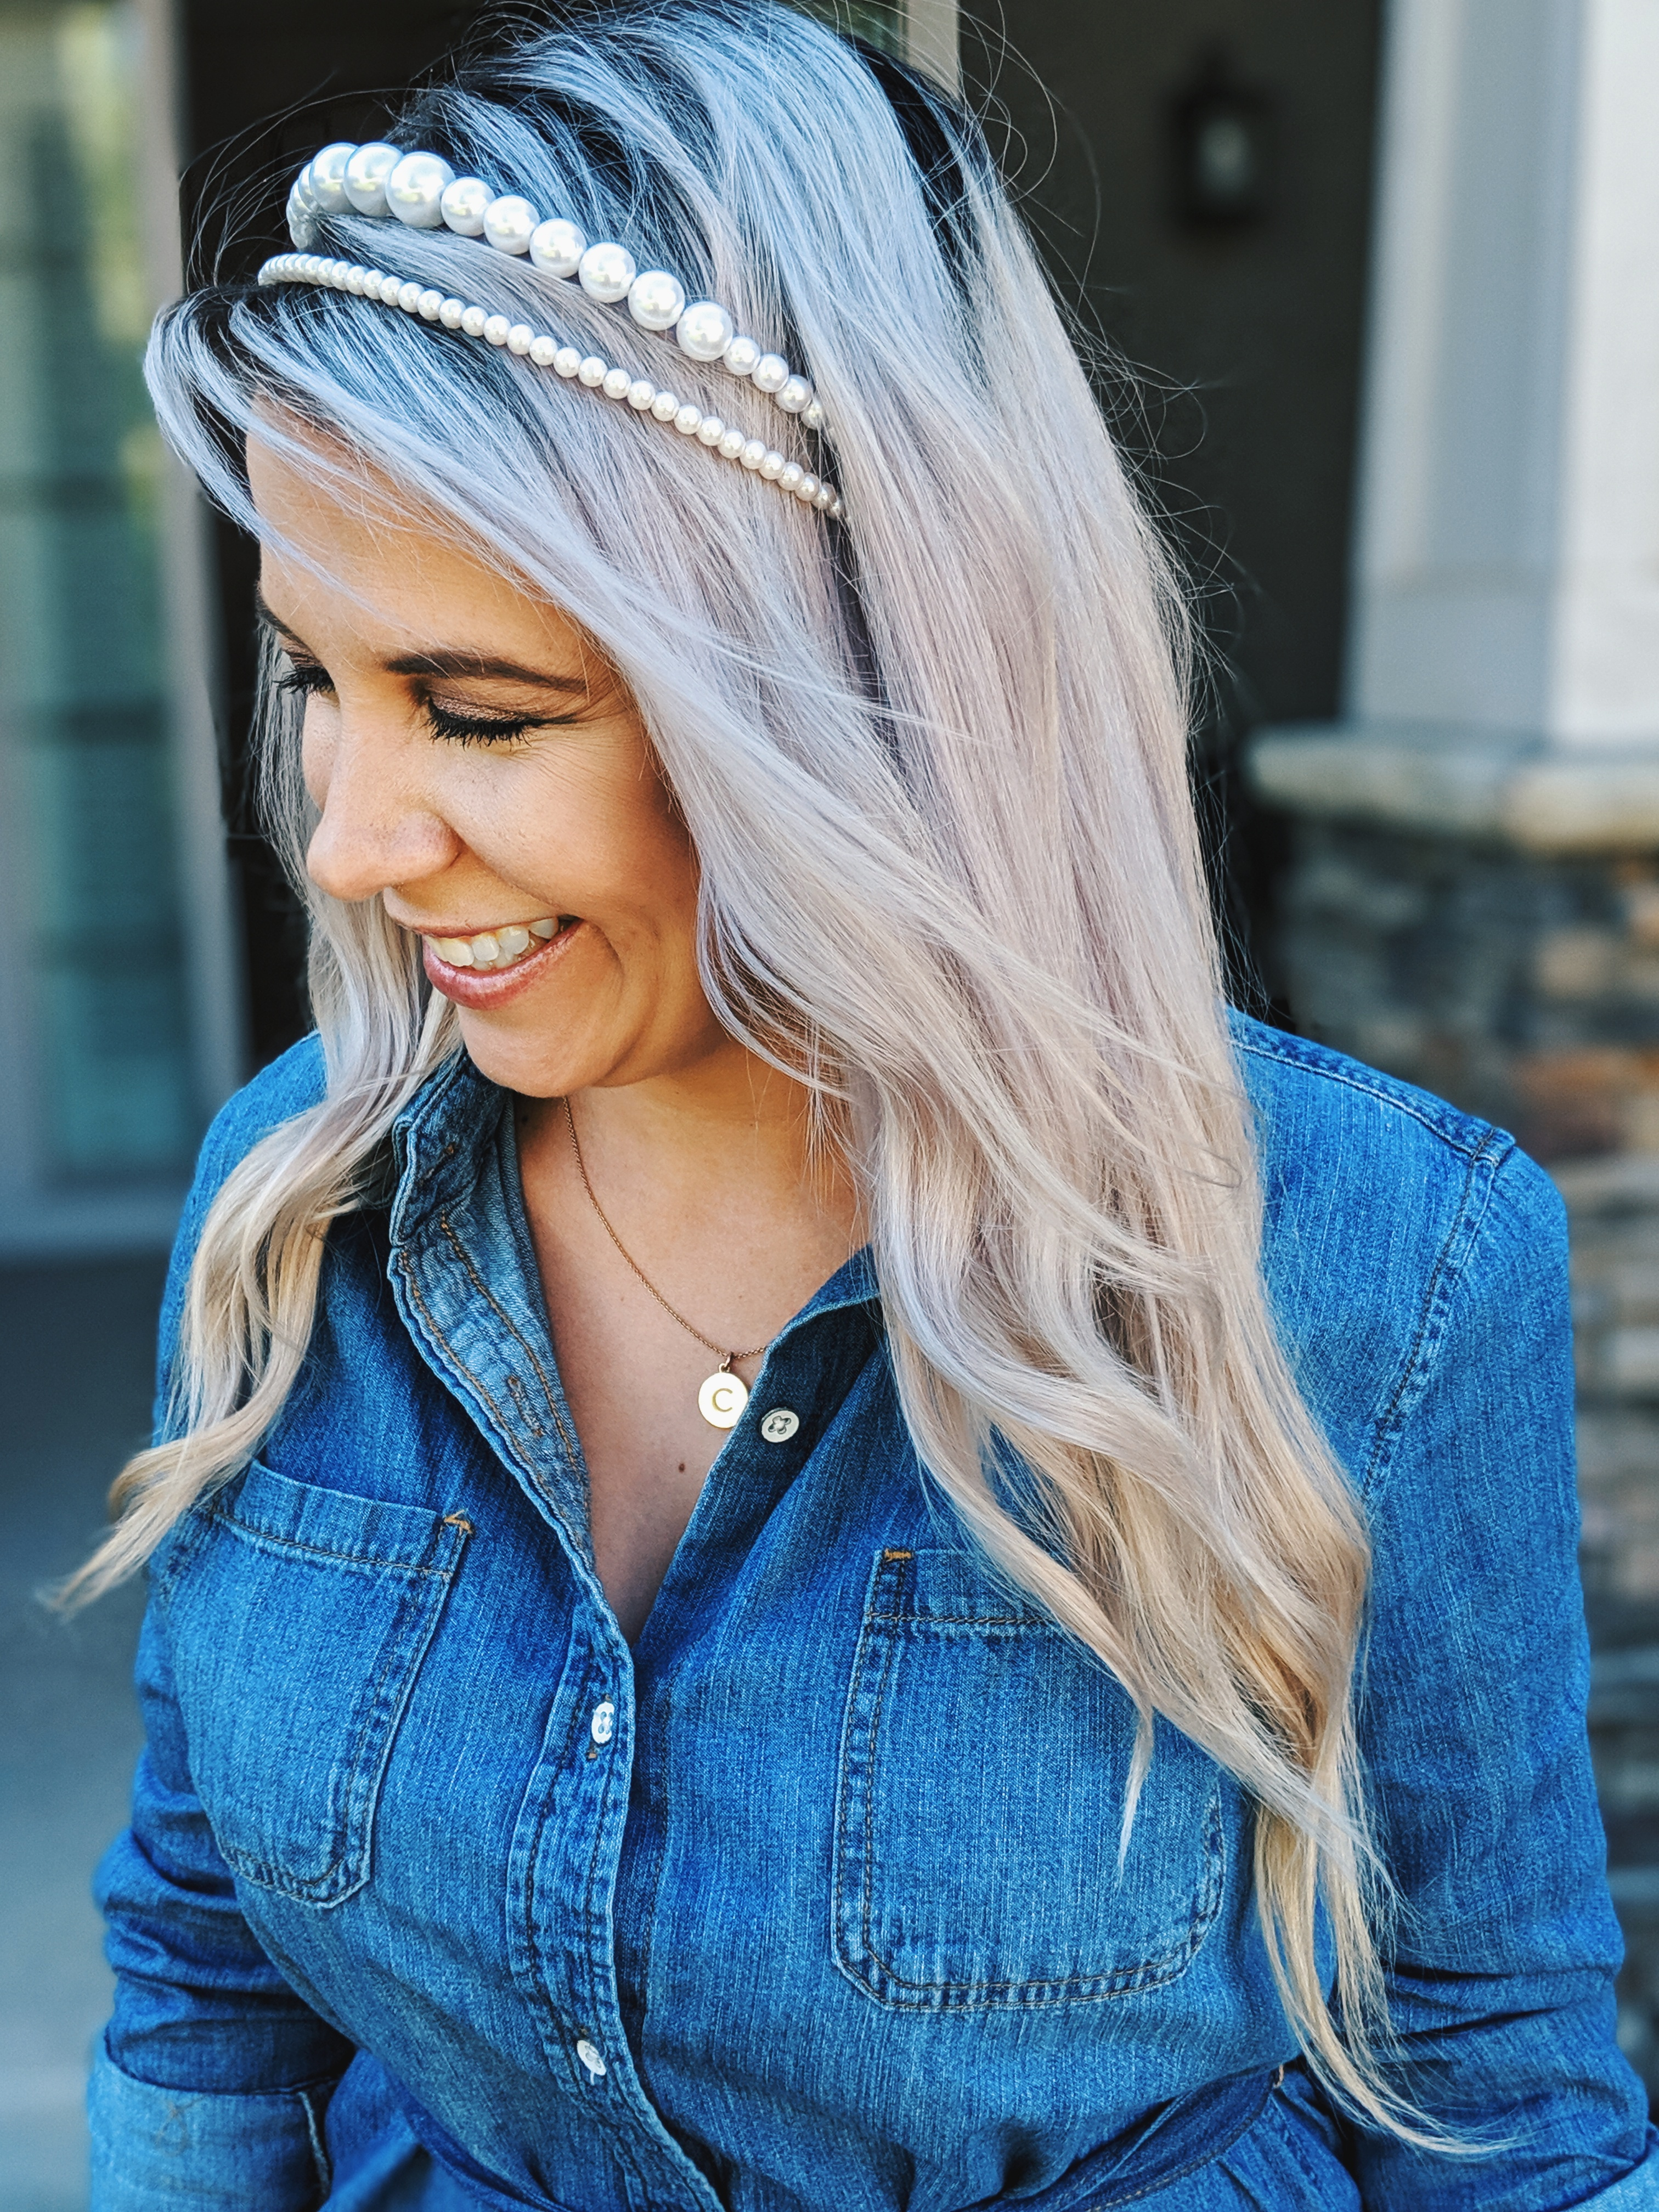 This is the cutest chambray shirt outfit I've seen! :) Love this chambray shirt dress styled with pearl headbands and the cutest accessories. If you're looking for chambray dress outfit ideas or jean shirt dress outfits, check this out! #chambray #shirtdress #target #liketkit